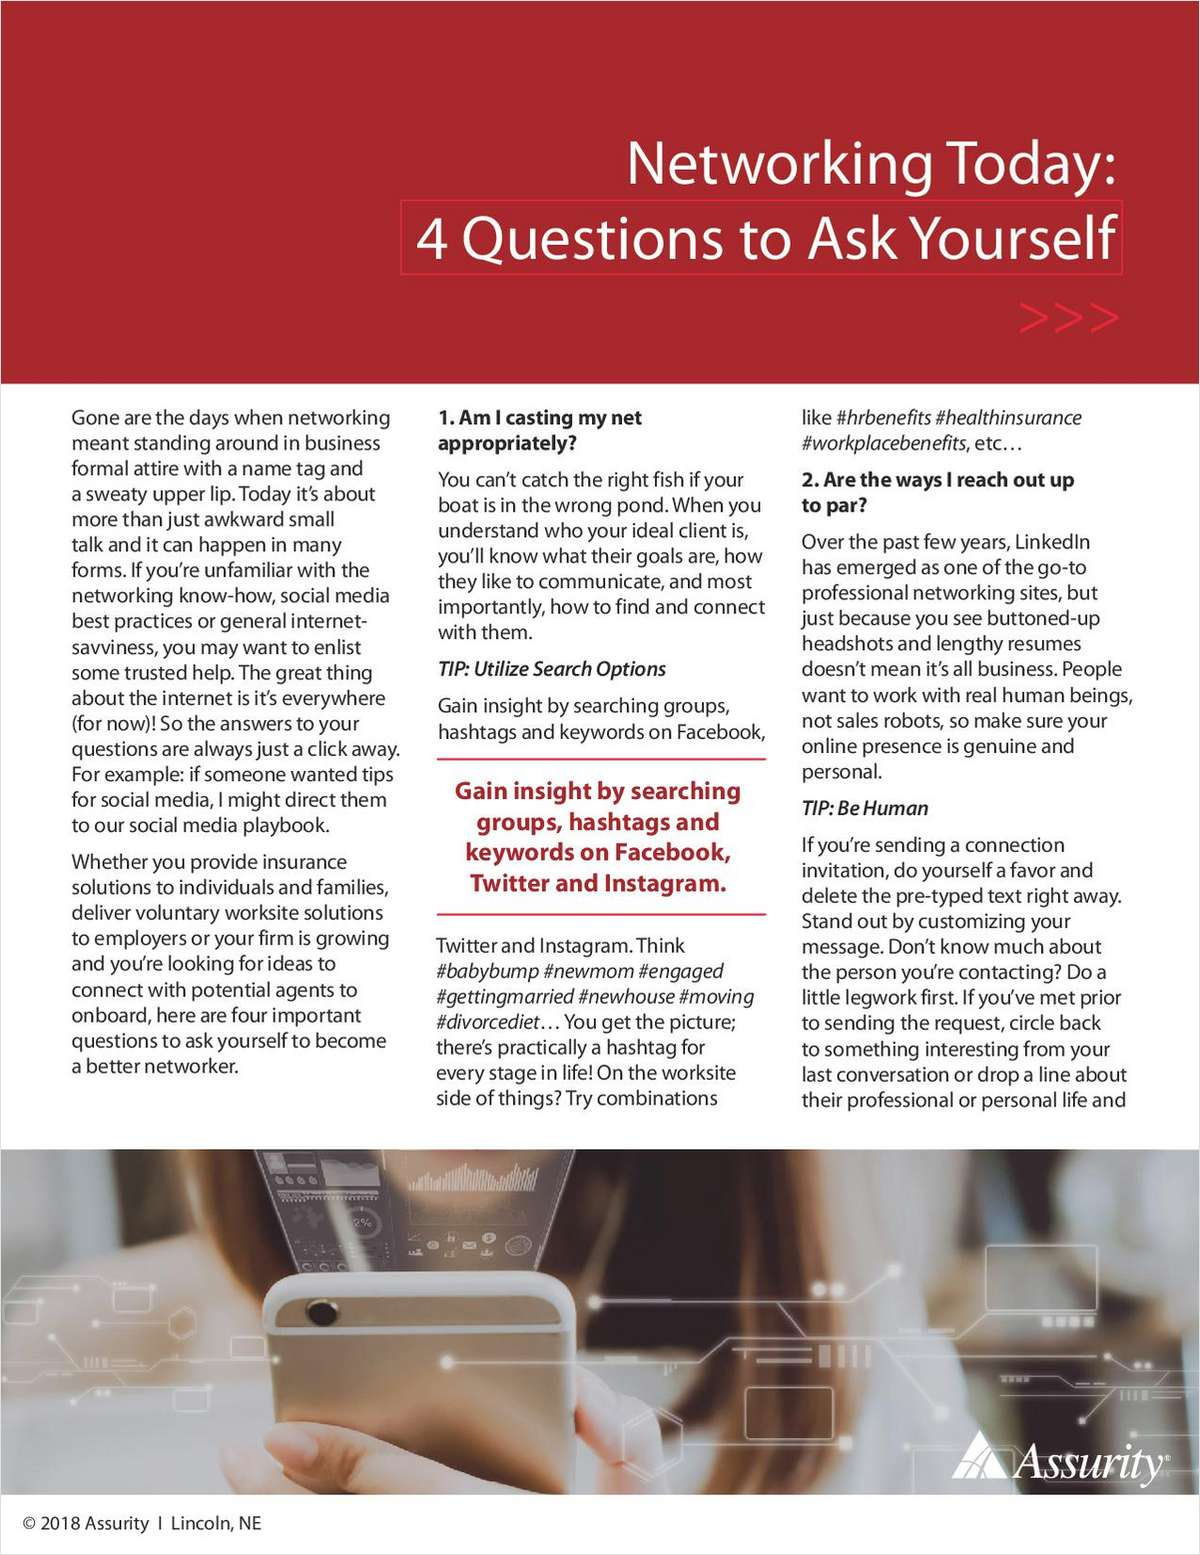 Networking: 4 Questions to Ask Yourself